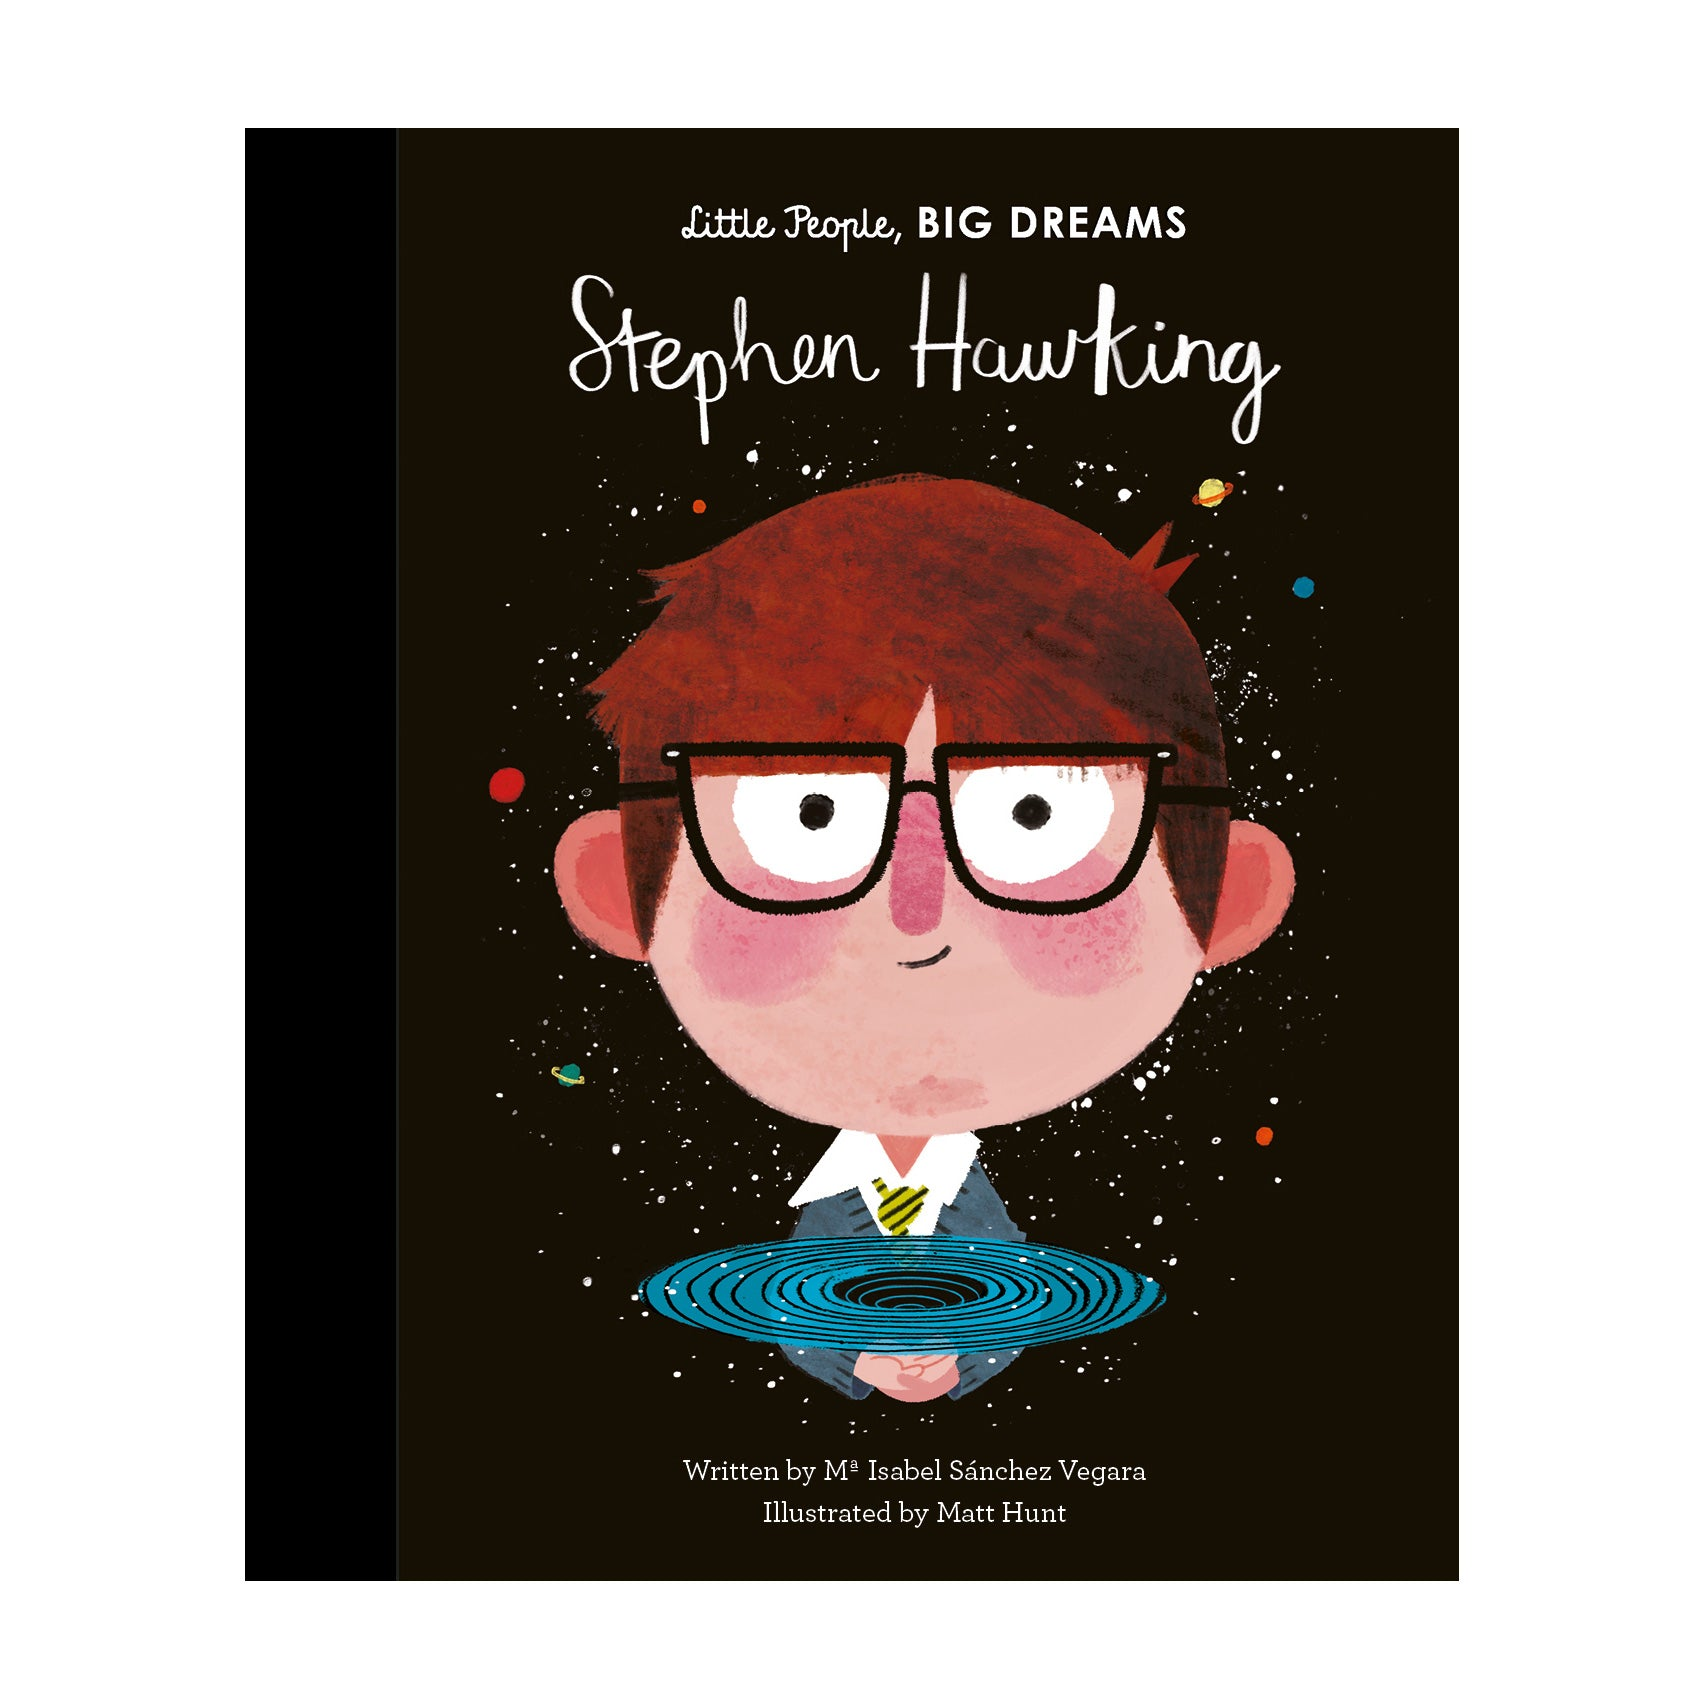 Stephen Hawking - Little People Big Dreams - Kids Book - Paper Plane - Gifts - NZ Stockist